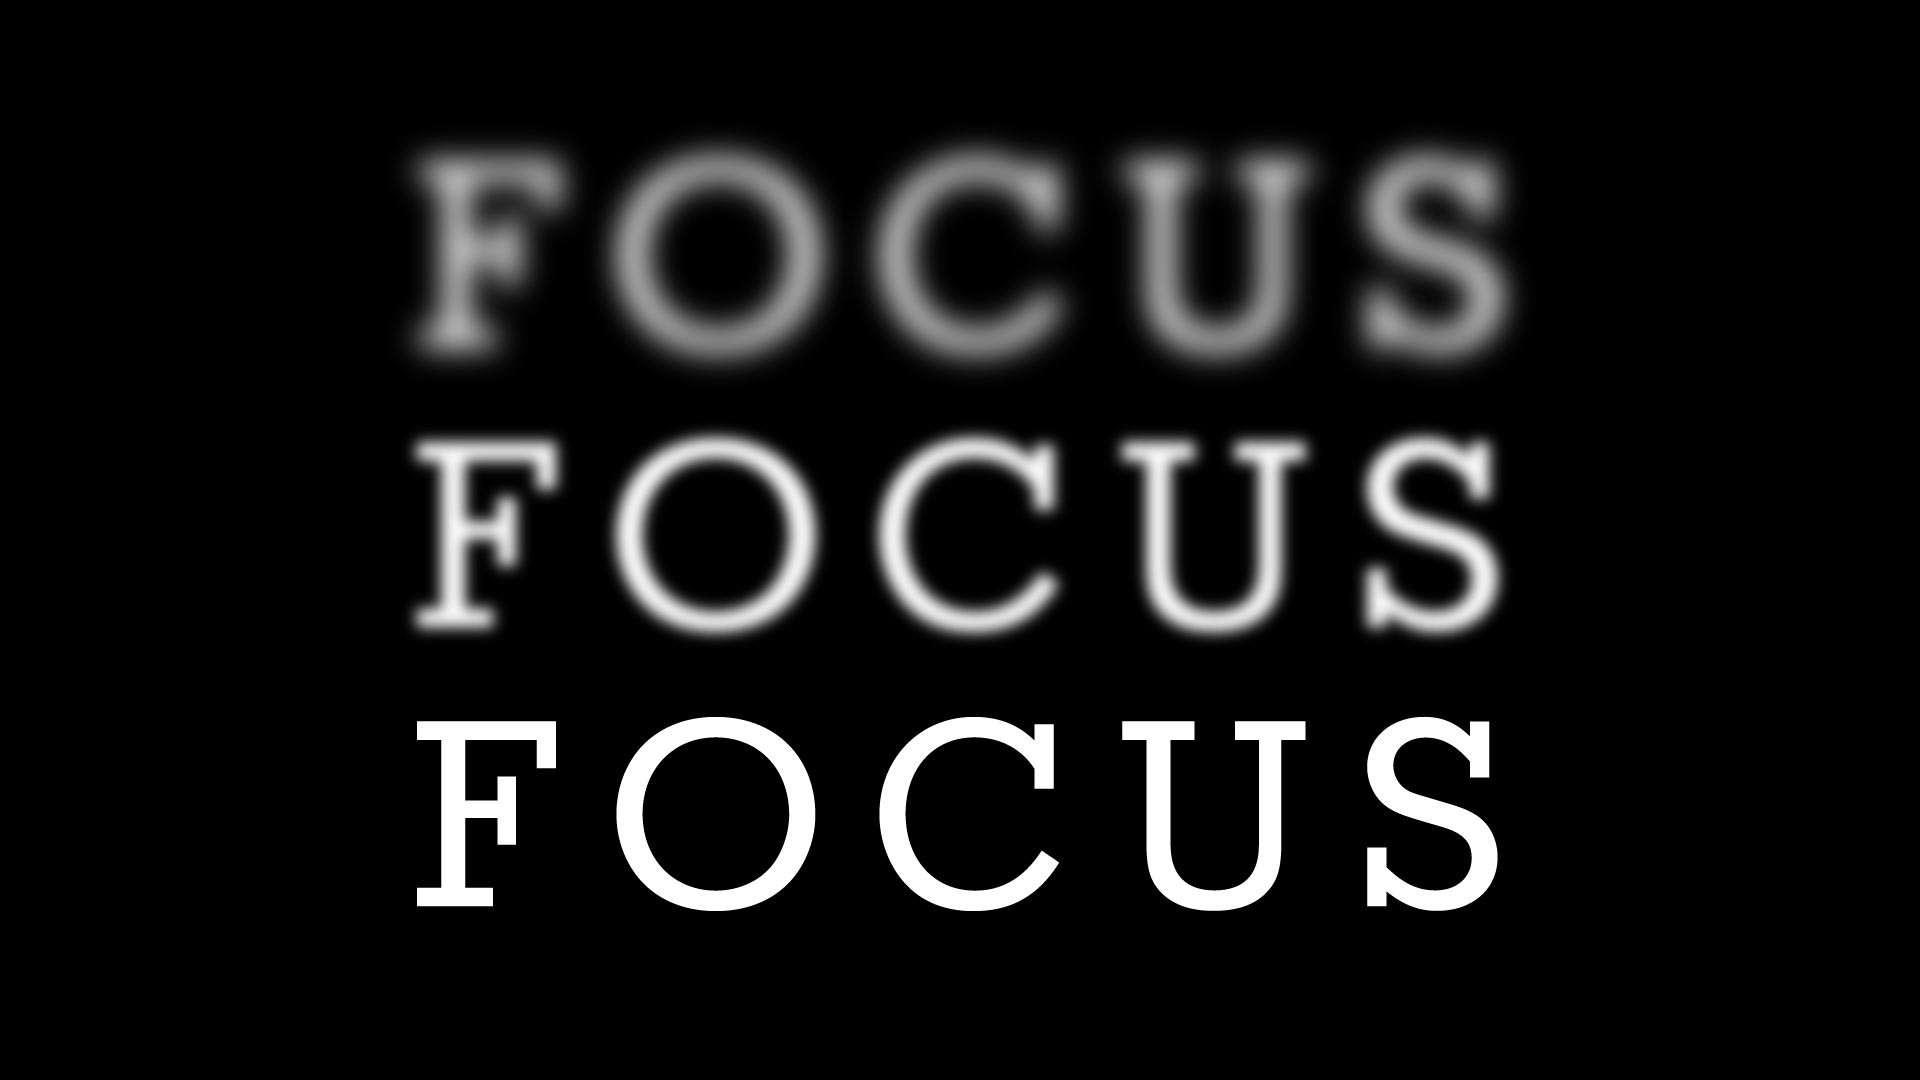 FOCUS - Them Not Us